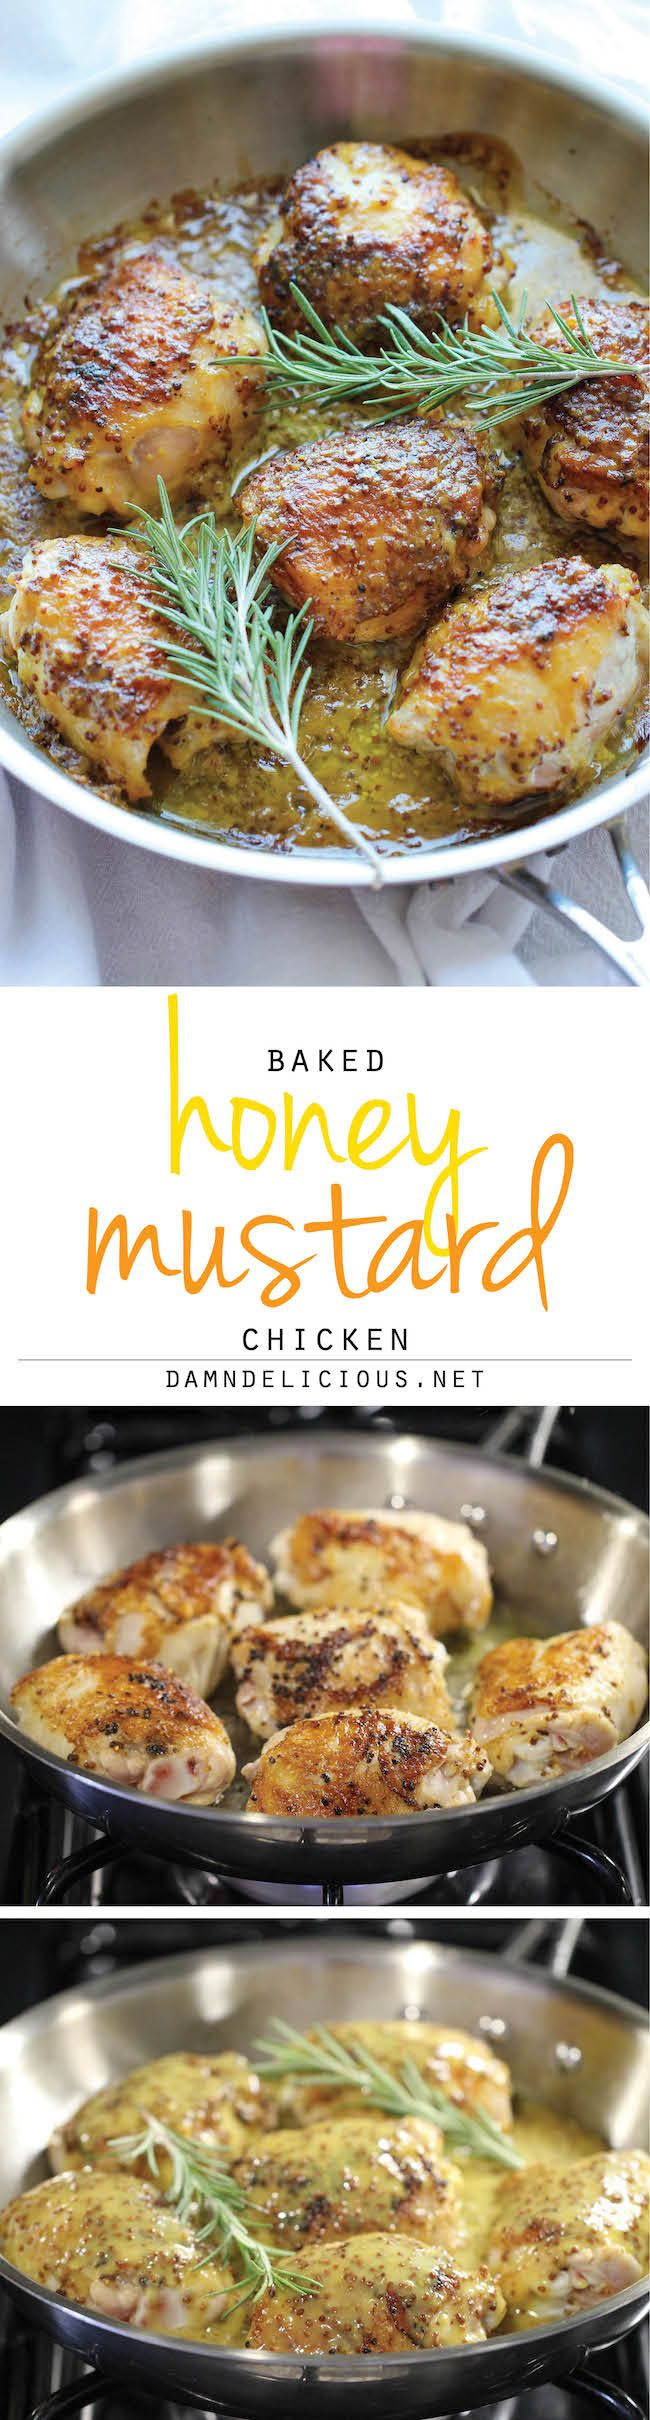 online fashion store Baked Honey Mustard Chicken  I think I will use chicken breasts instead of the thighs